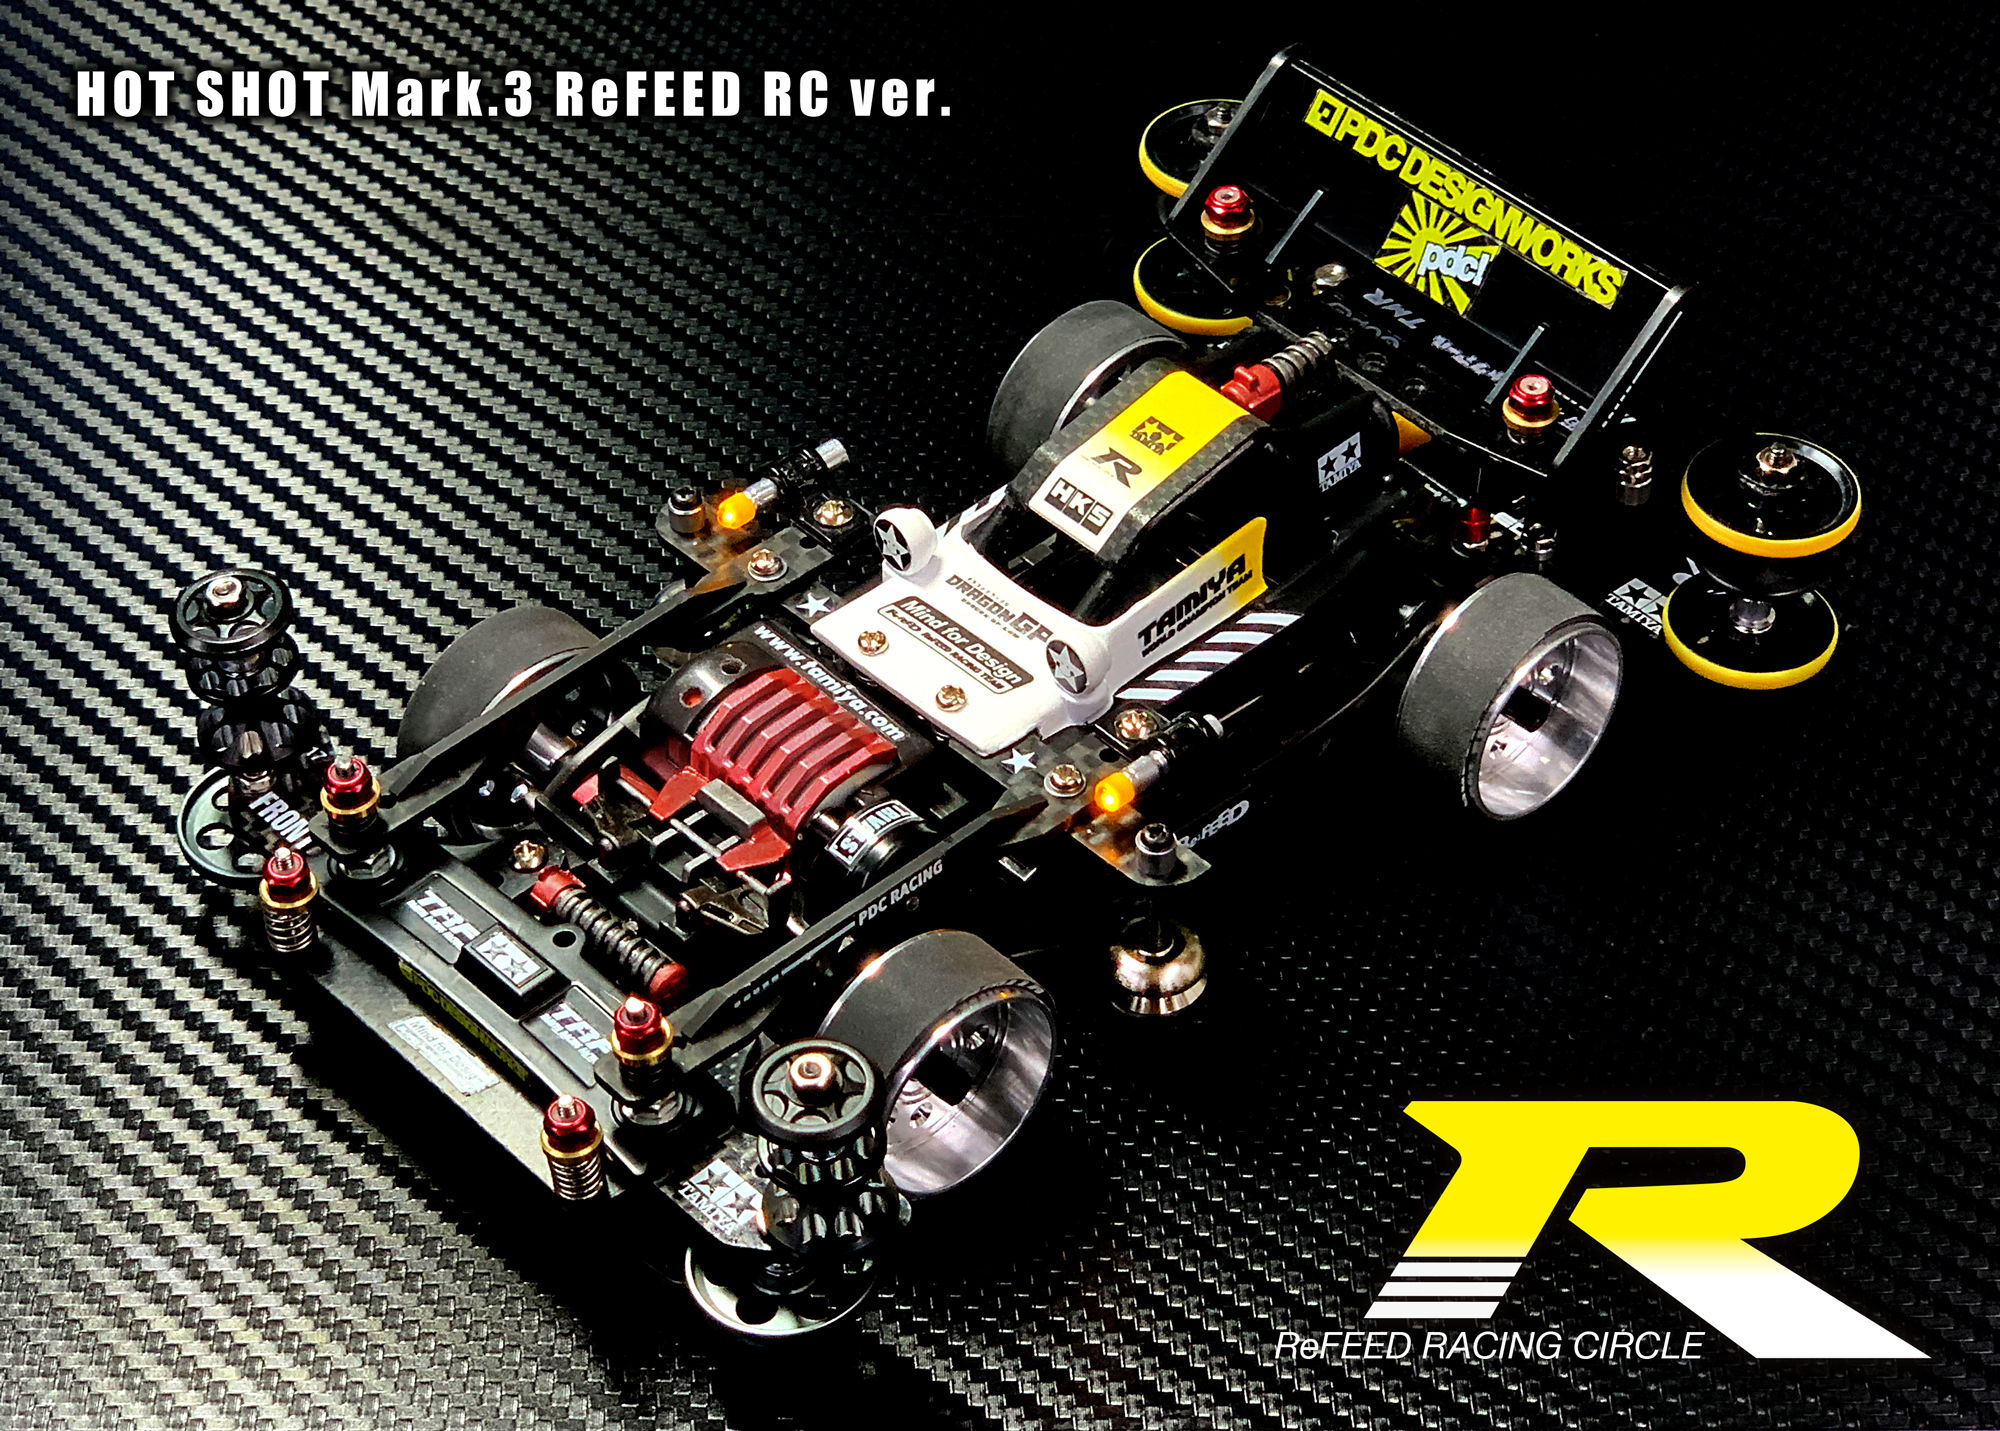 HOTSHOT mark.3 ReFEED RC ver.